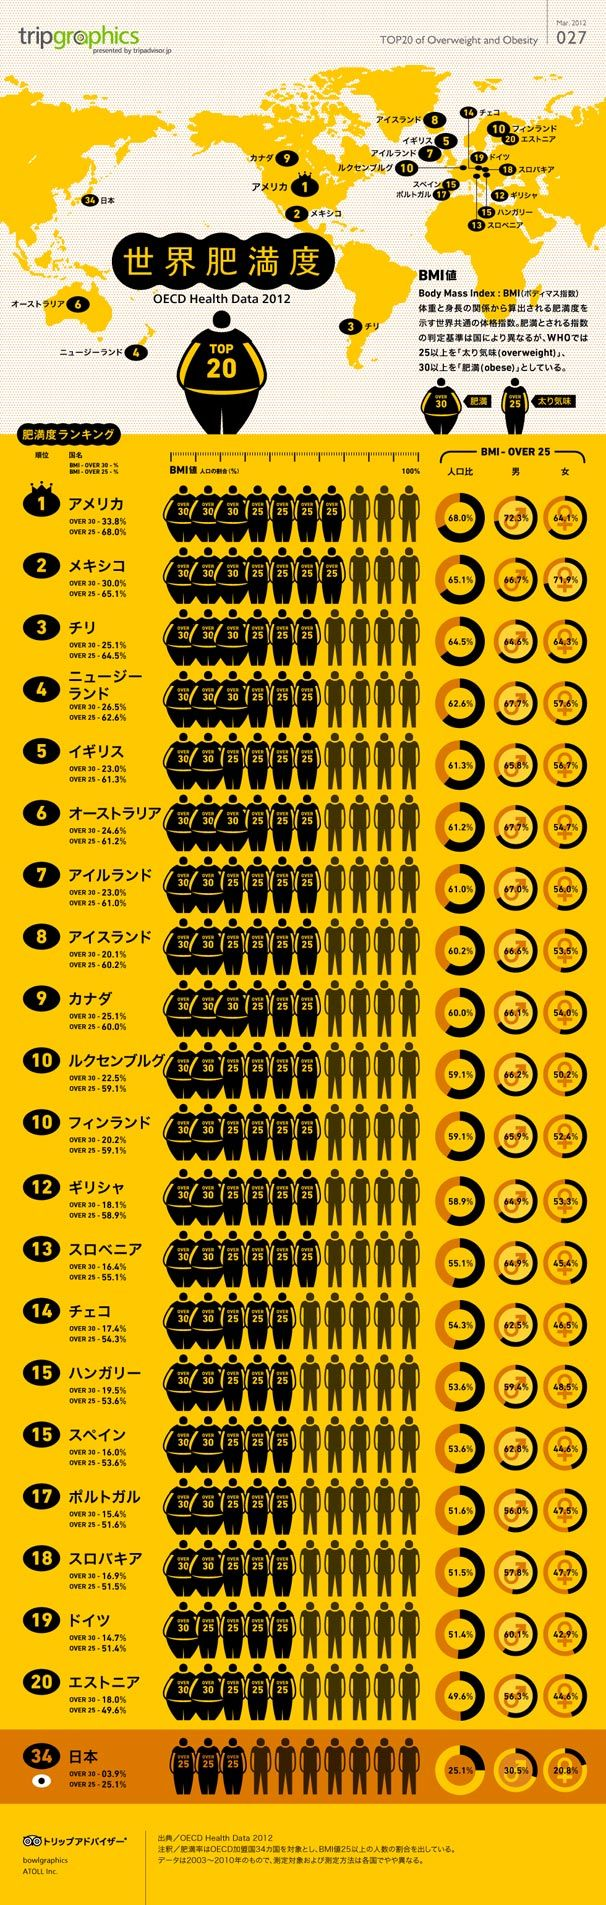 TOP20 of Overweight and Obesity / 世界肥満地図